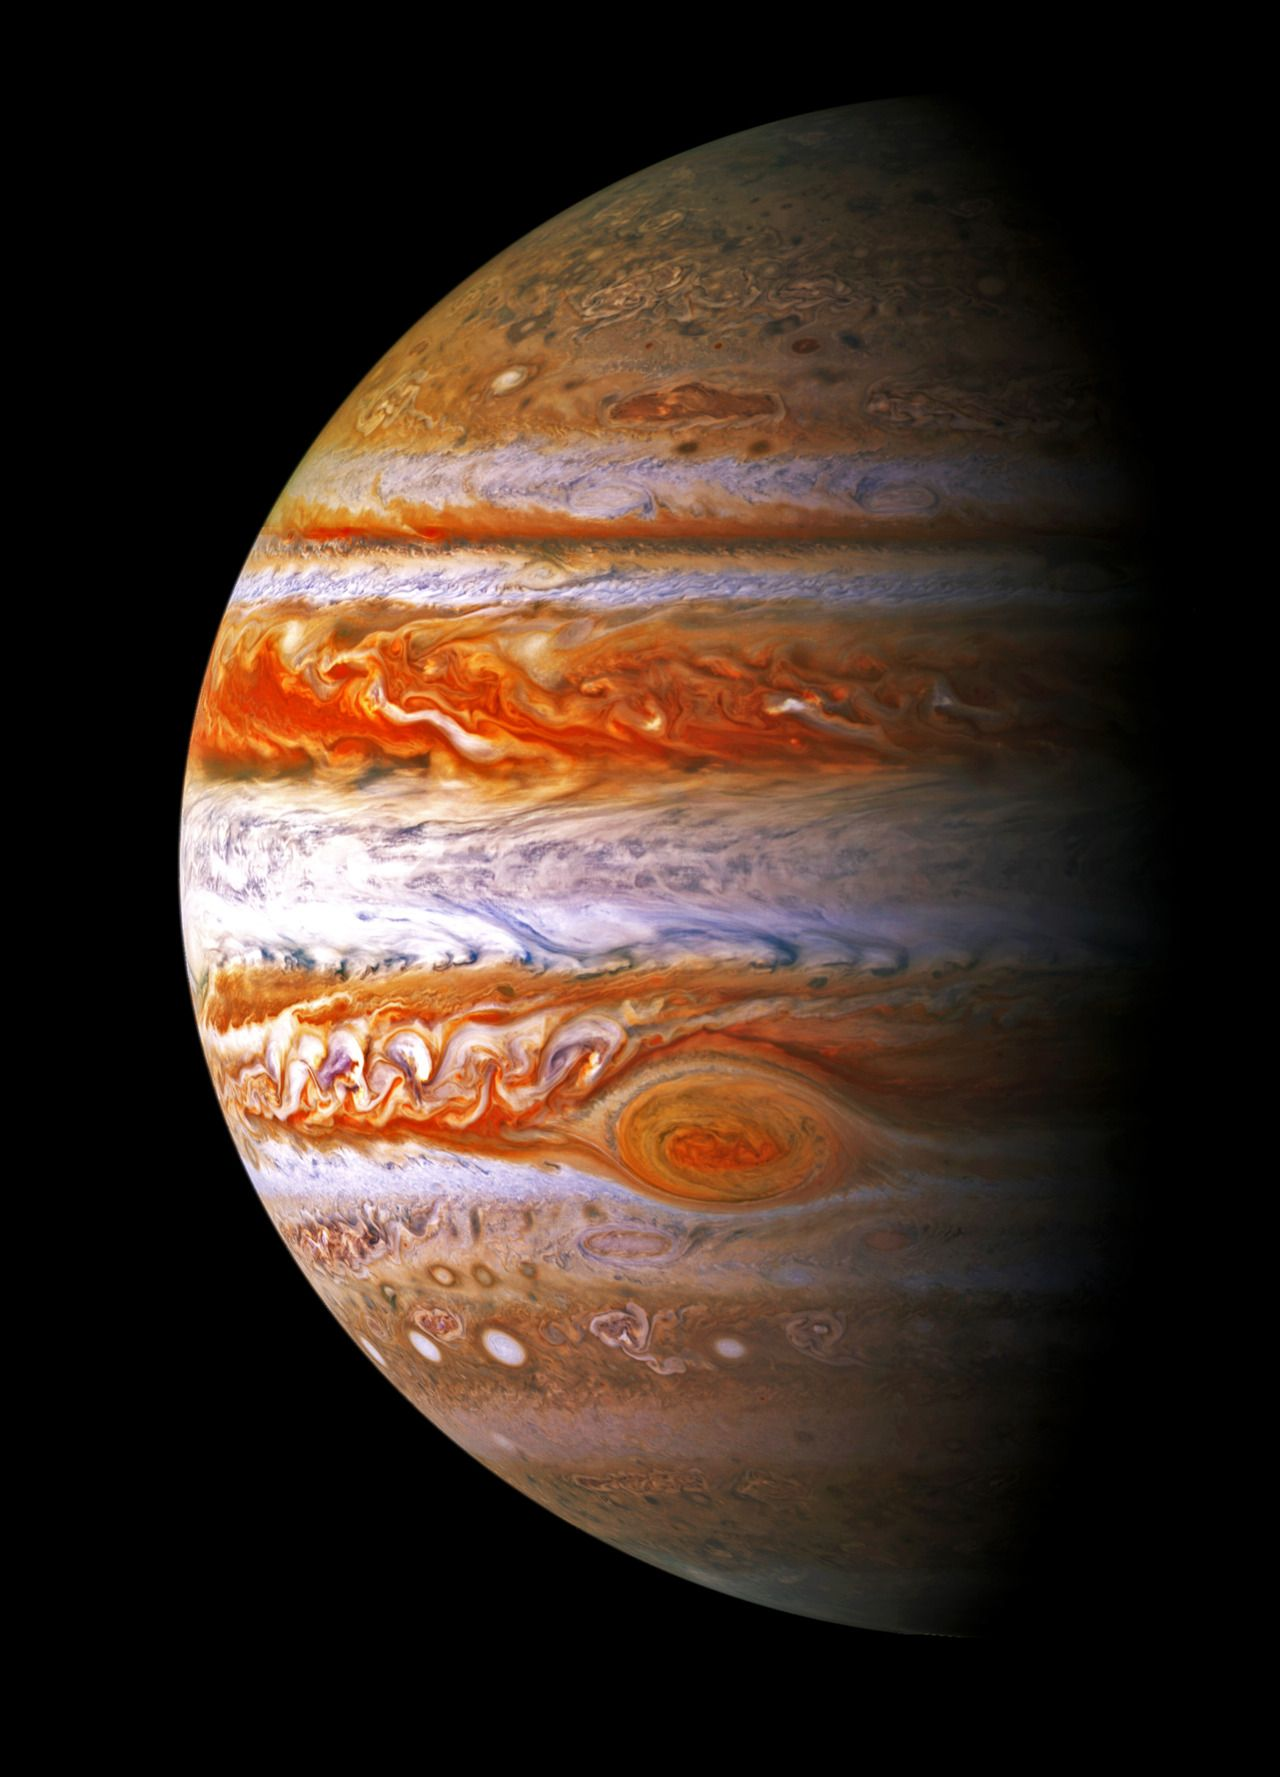 Mass one-thousandth that of the Sun but is two and a half times the mass of all the other planets in our Solar System combined. #Jupiter is classified as a gas giant along with Saturn, Uranus and Neptune. Together, these four planets are sometimes referred to as the Jovian or outer planets.